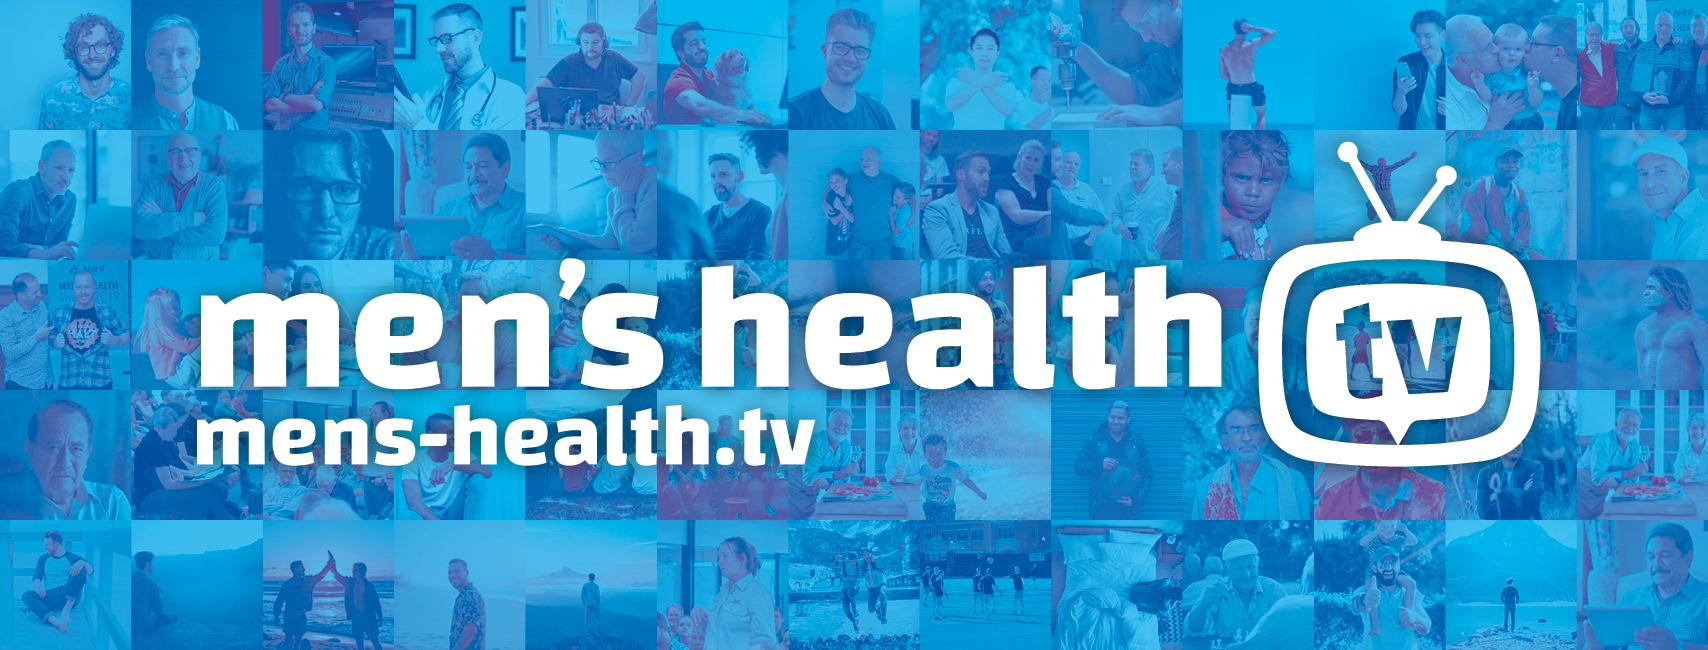 mens health tv banner